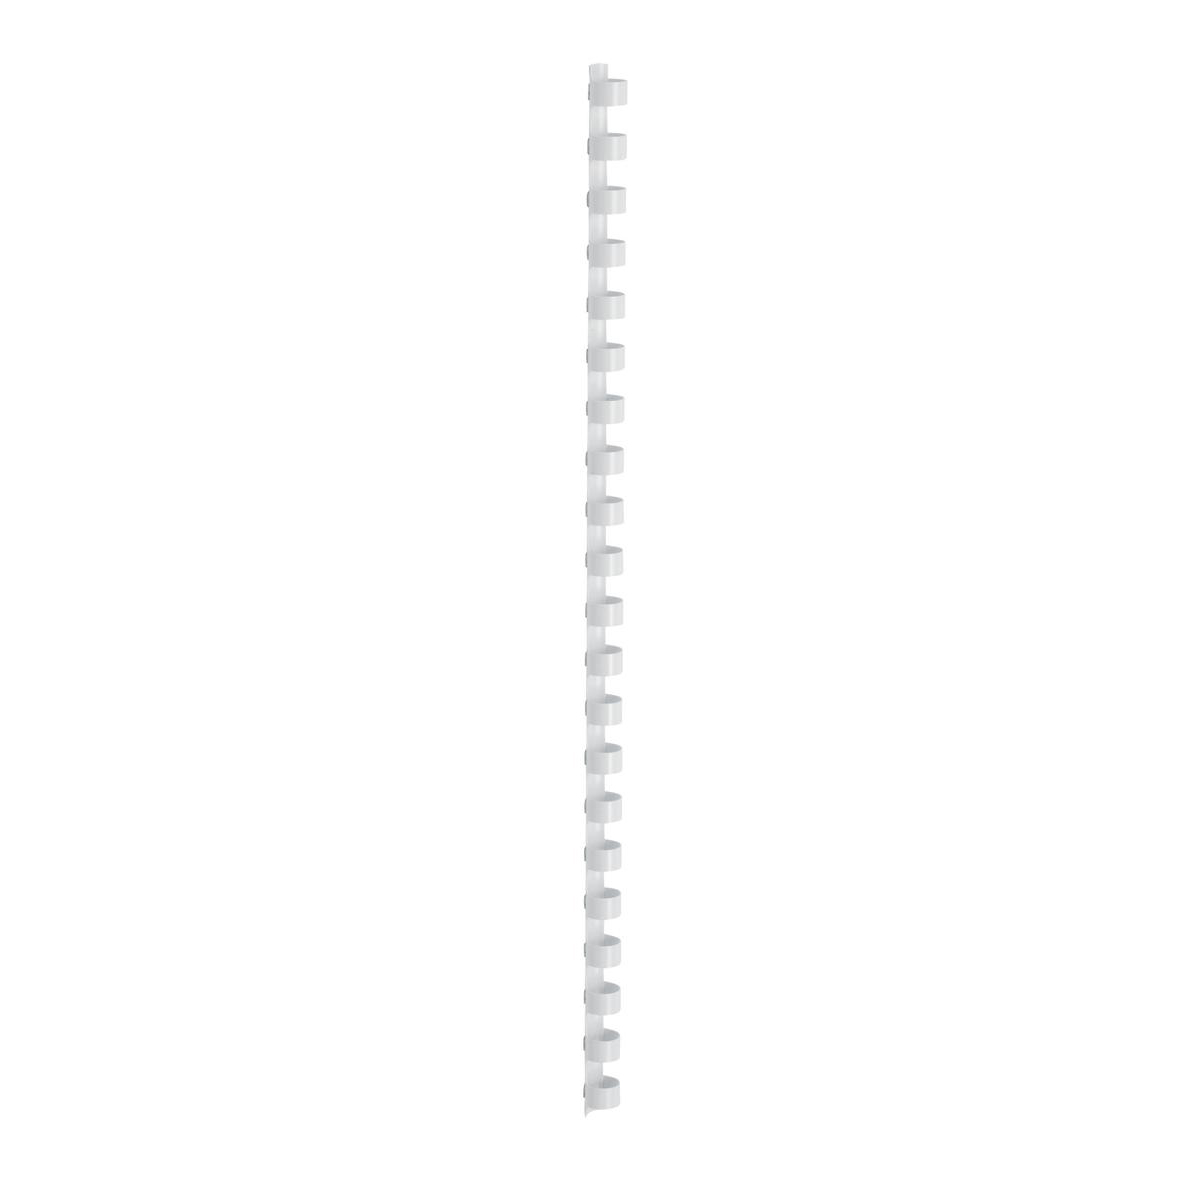 Binding Combs 5 Star Office Binding Combs Plastic 21 Ring 95 Sheets A4 12mm White Pack 100